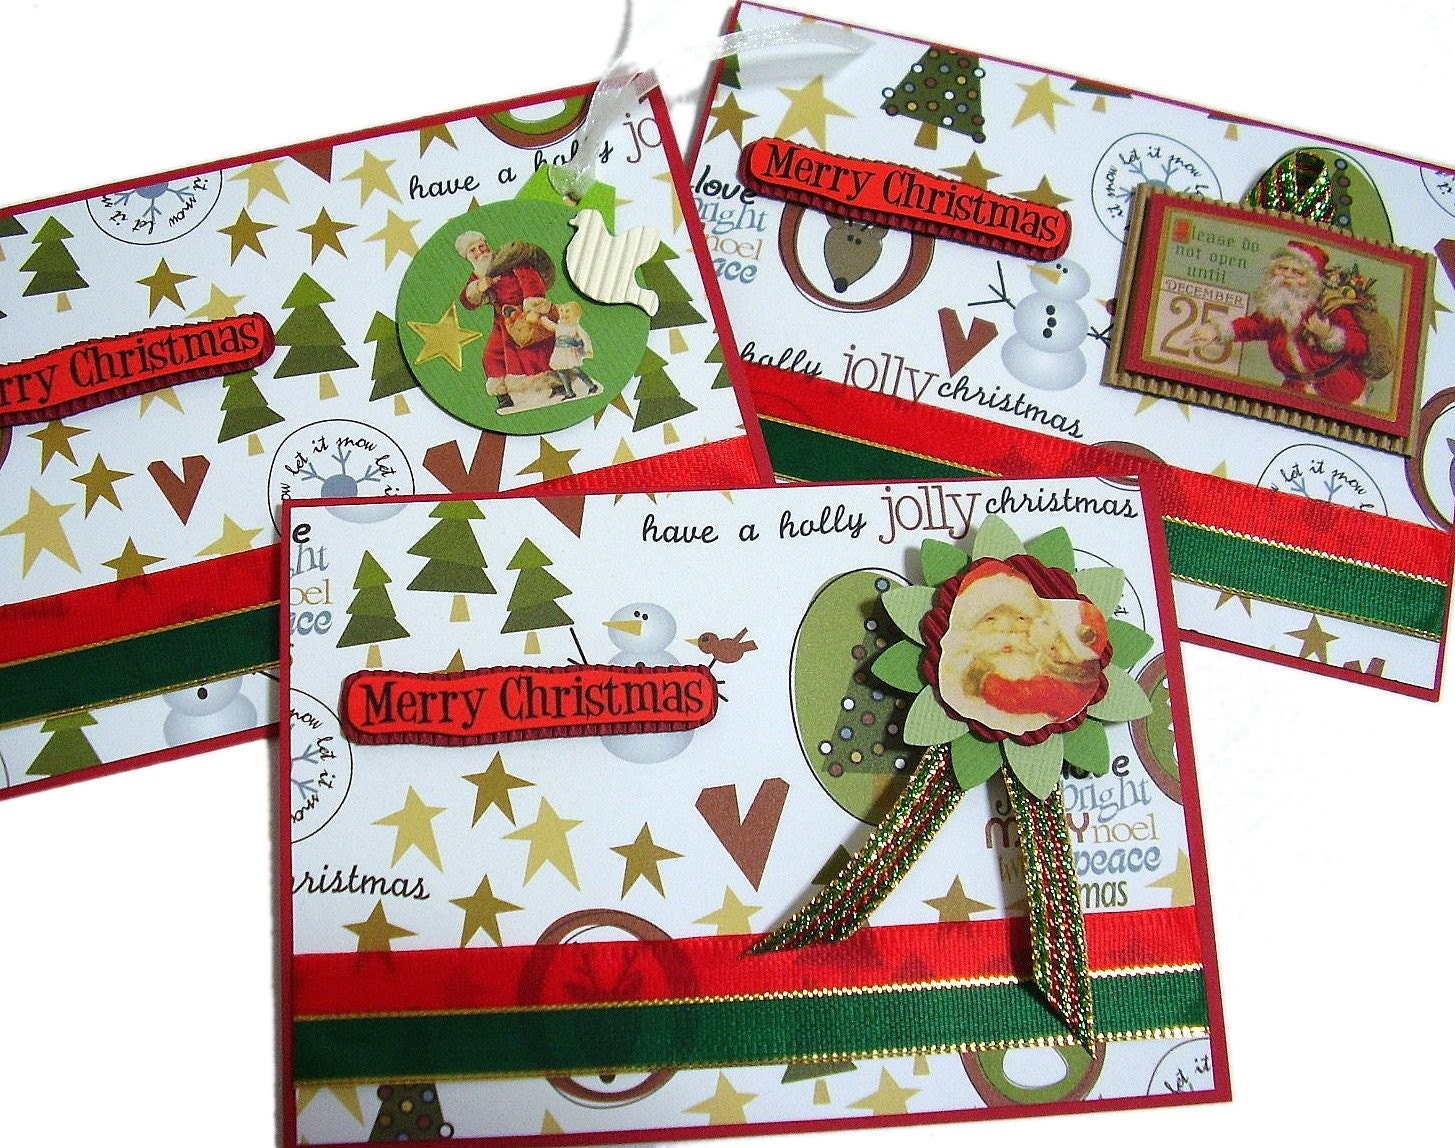 Christmas In July - Merry Christmas Handmade Cards (set of 3) by uniquegrabs on Etsy